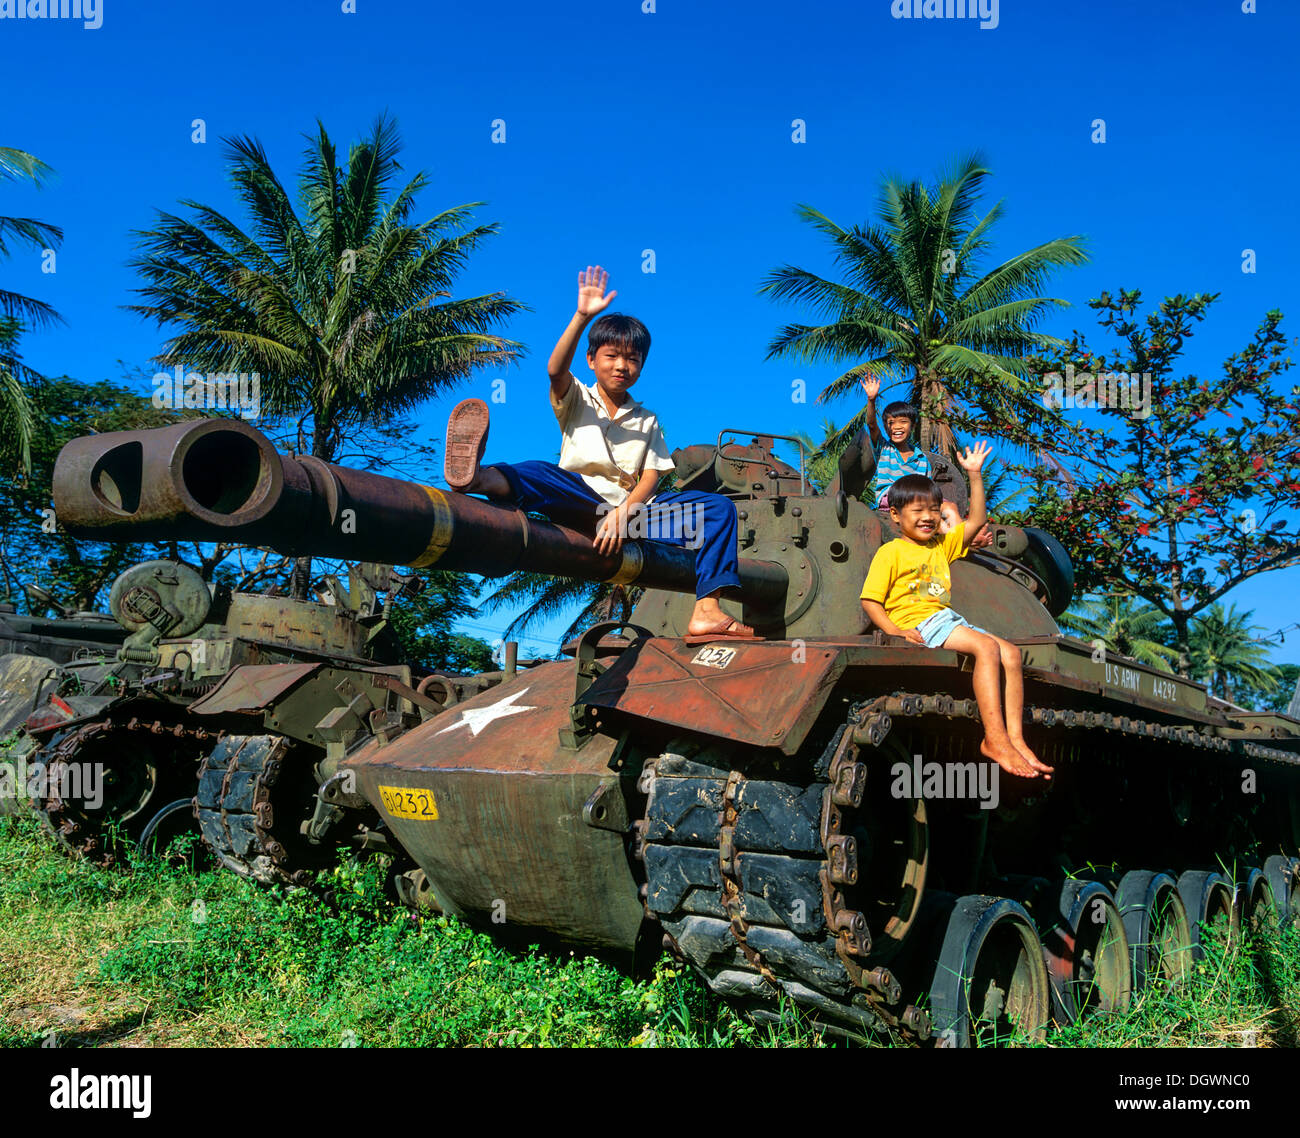 Waving children sitting on a M48 tank from the U.S. Army, Hue, Provinz Thua Thien-Hue, Vietnam - Stock Image